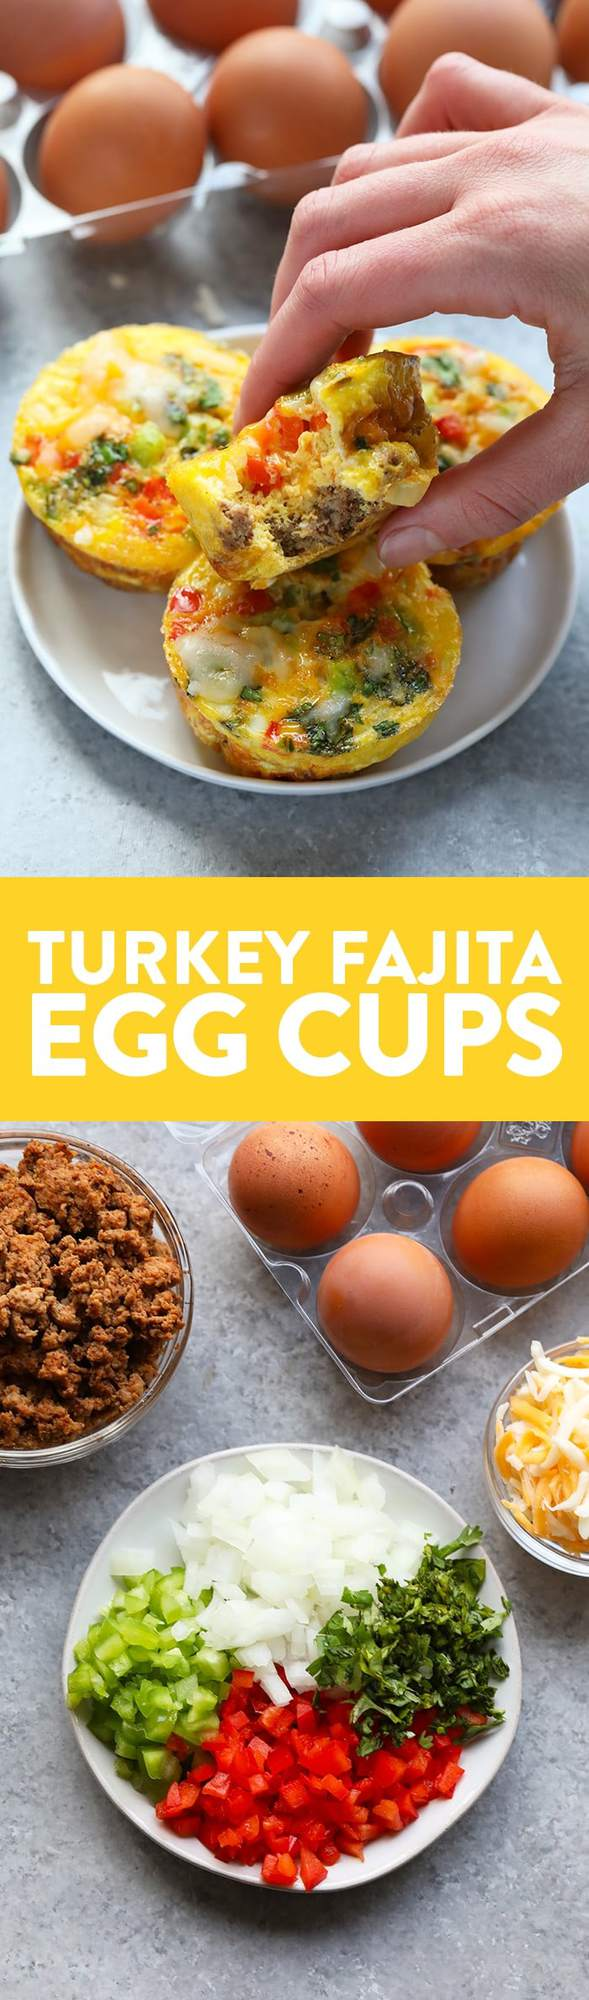 Turkey Fajita Egg Cups